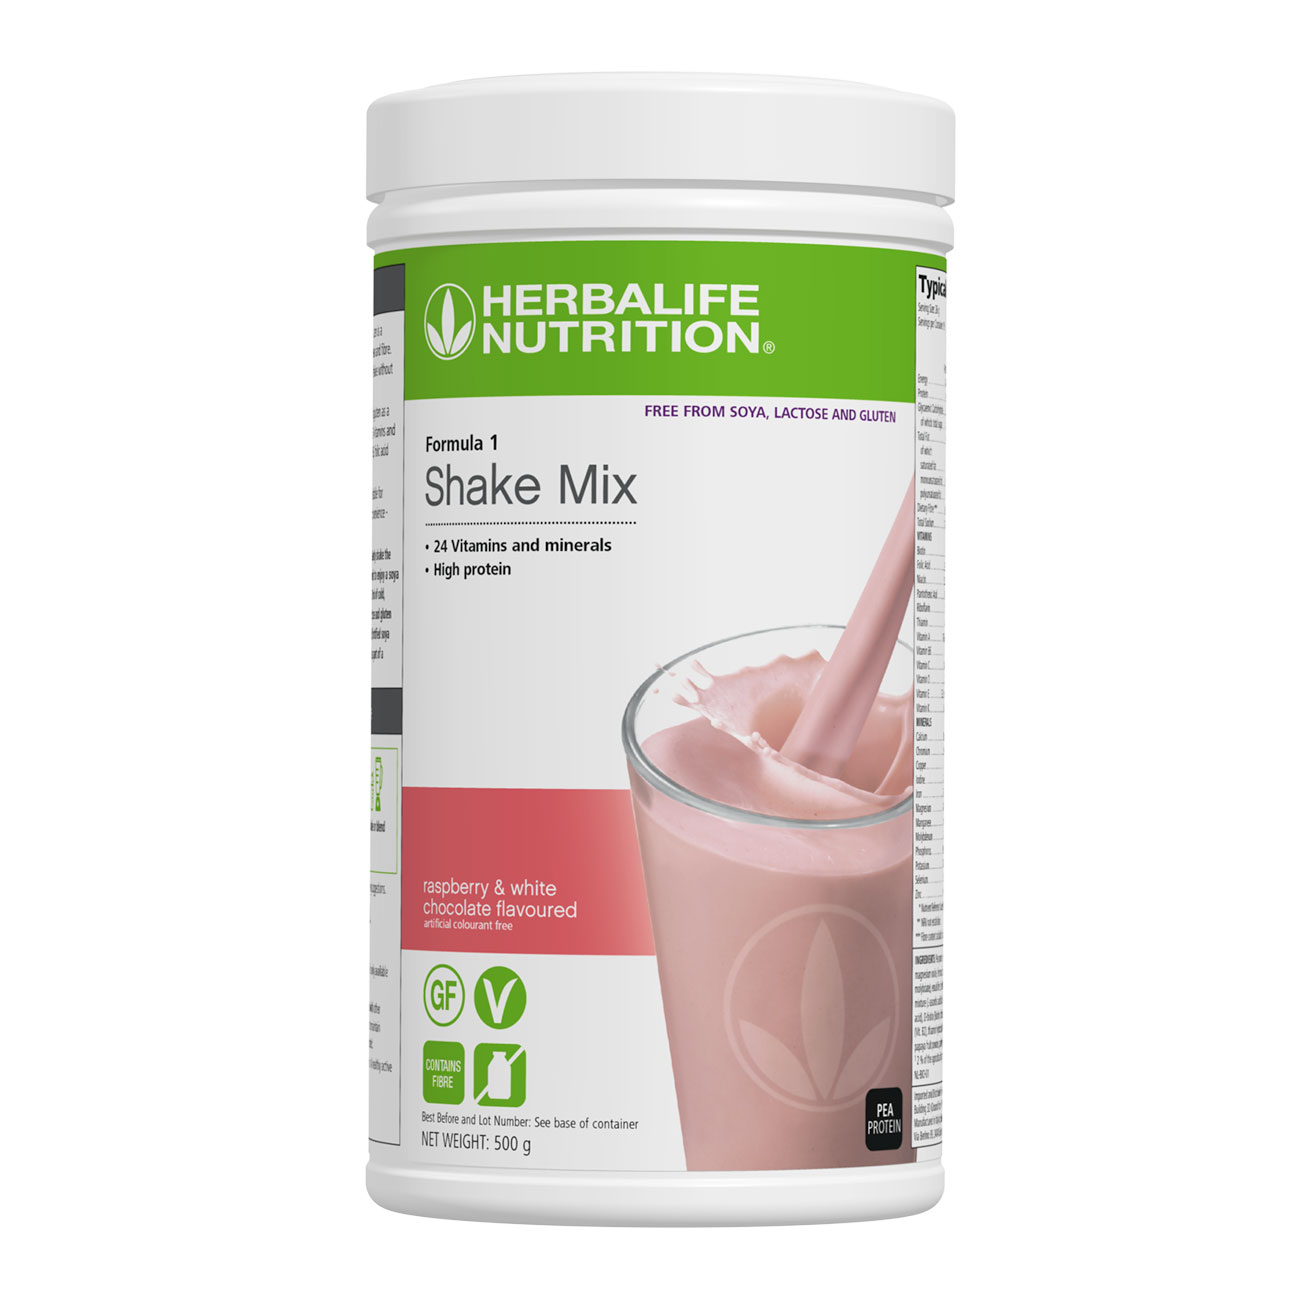 Formula 1 Free-From Shake Mix Raspberry and White Chocolate Flavoured product shot